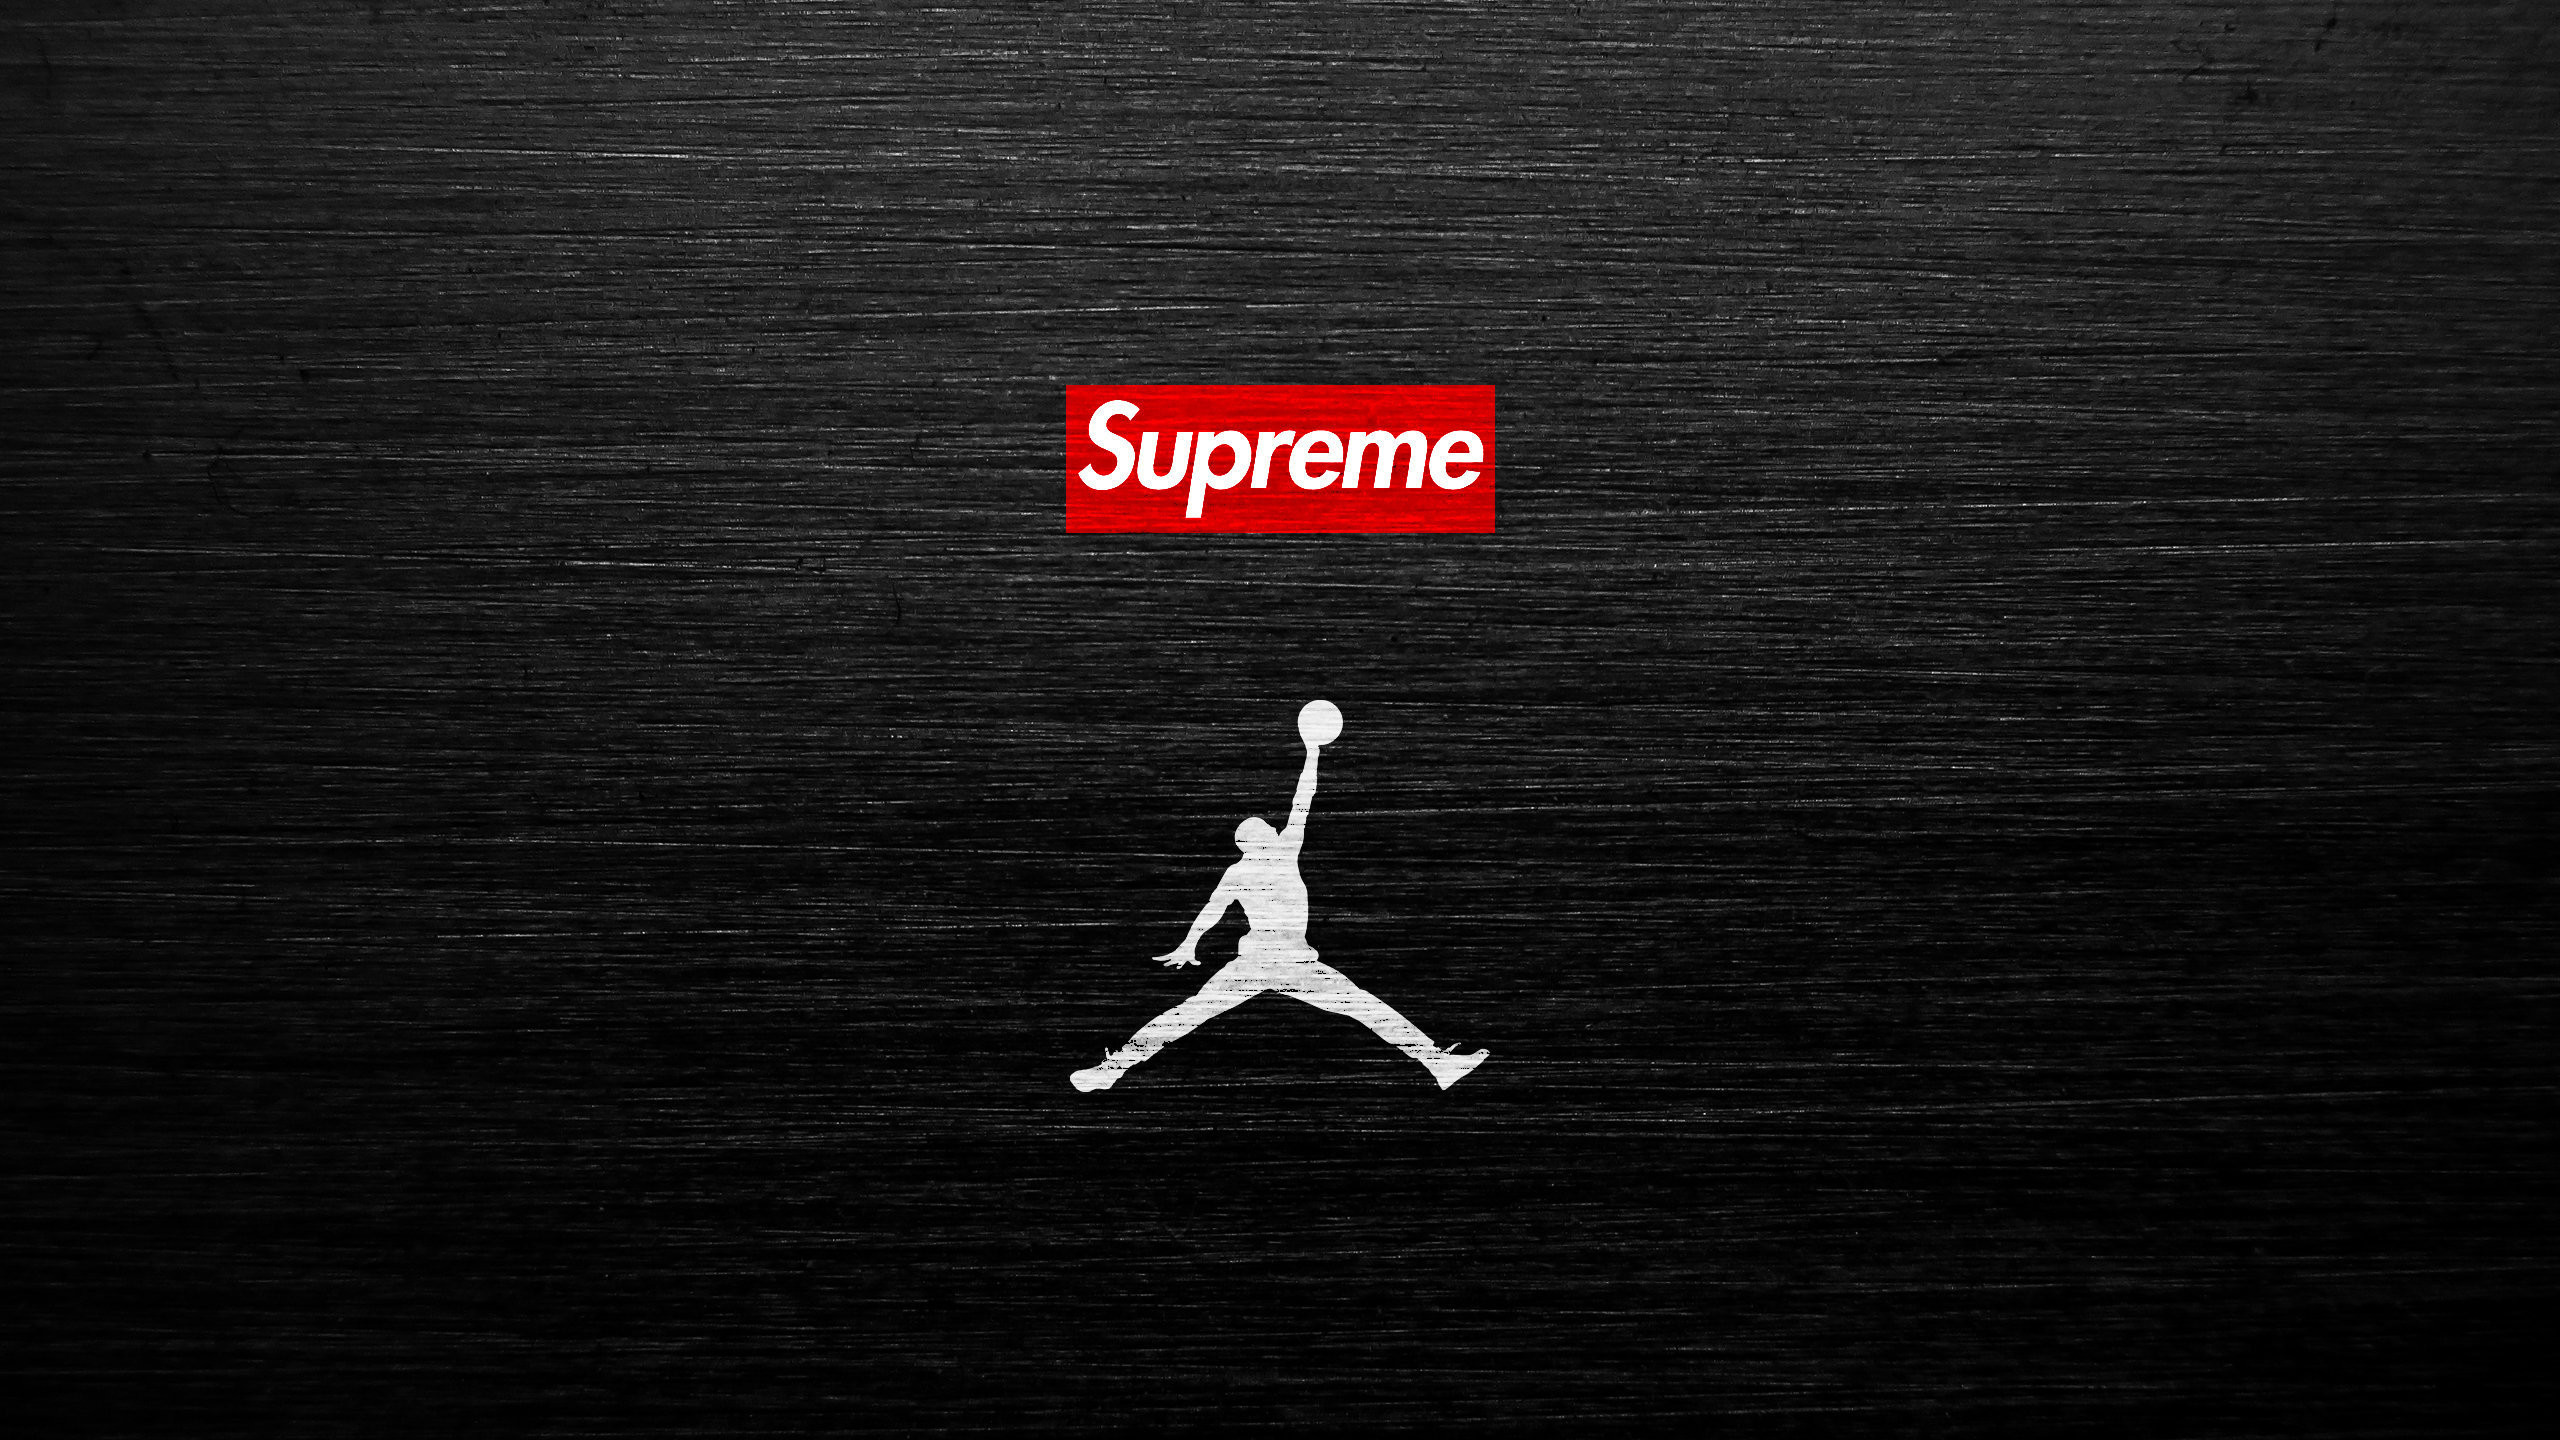 Nike best wallpapers for Wallpaper sources